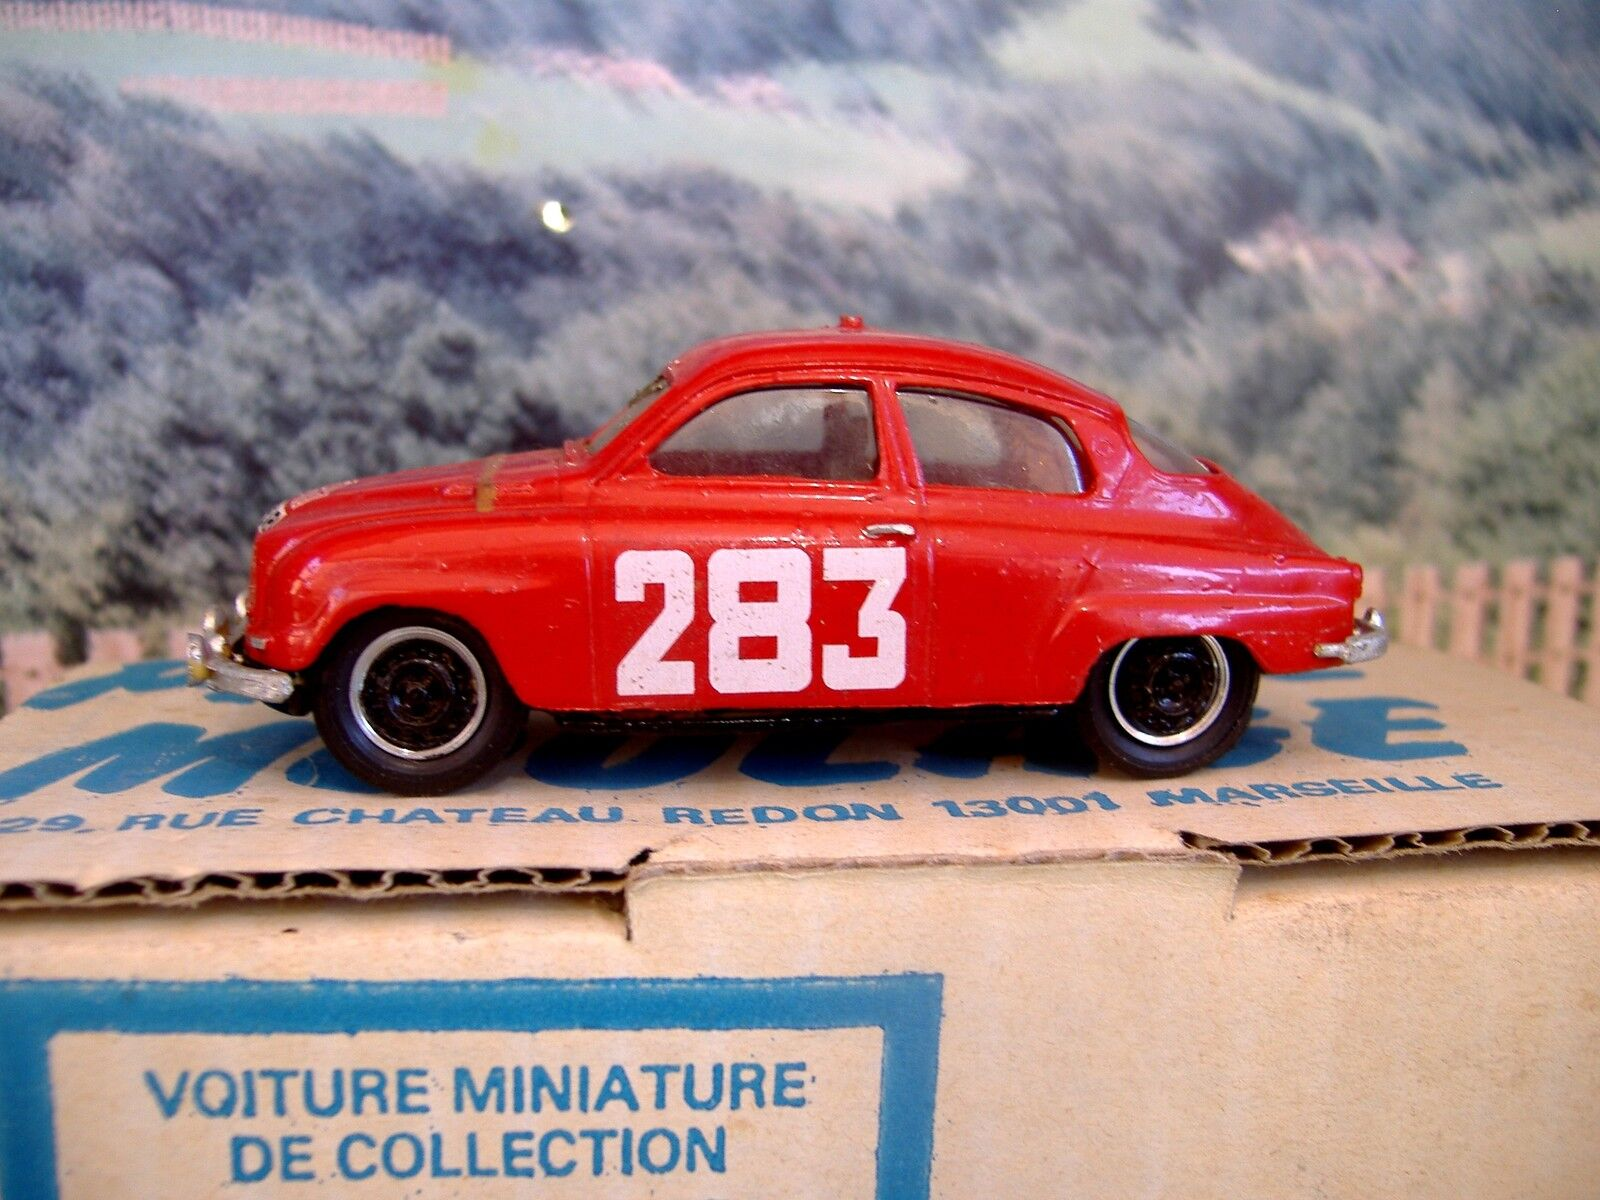 1 43 Provence Moulage Moulage Moulage (Francia) Saab 96 Montecarlo 1963 Hecho A Mano Resina coche modelo 1c9040